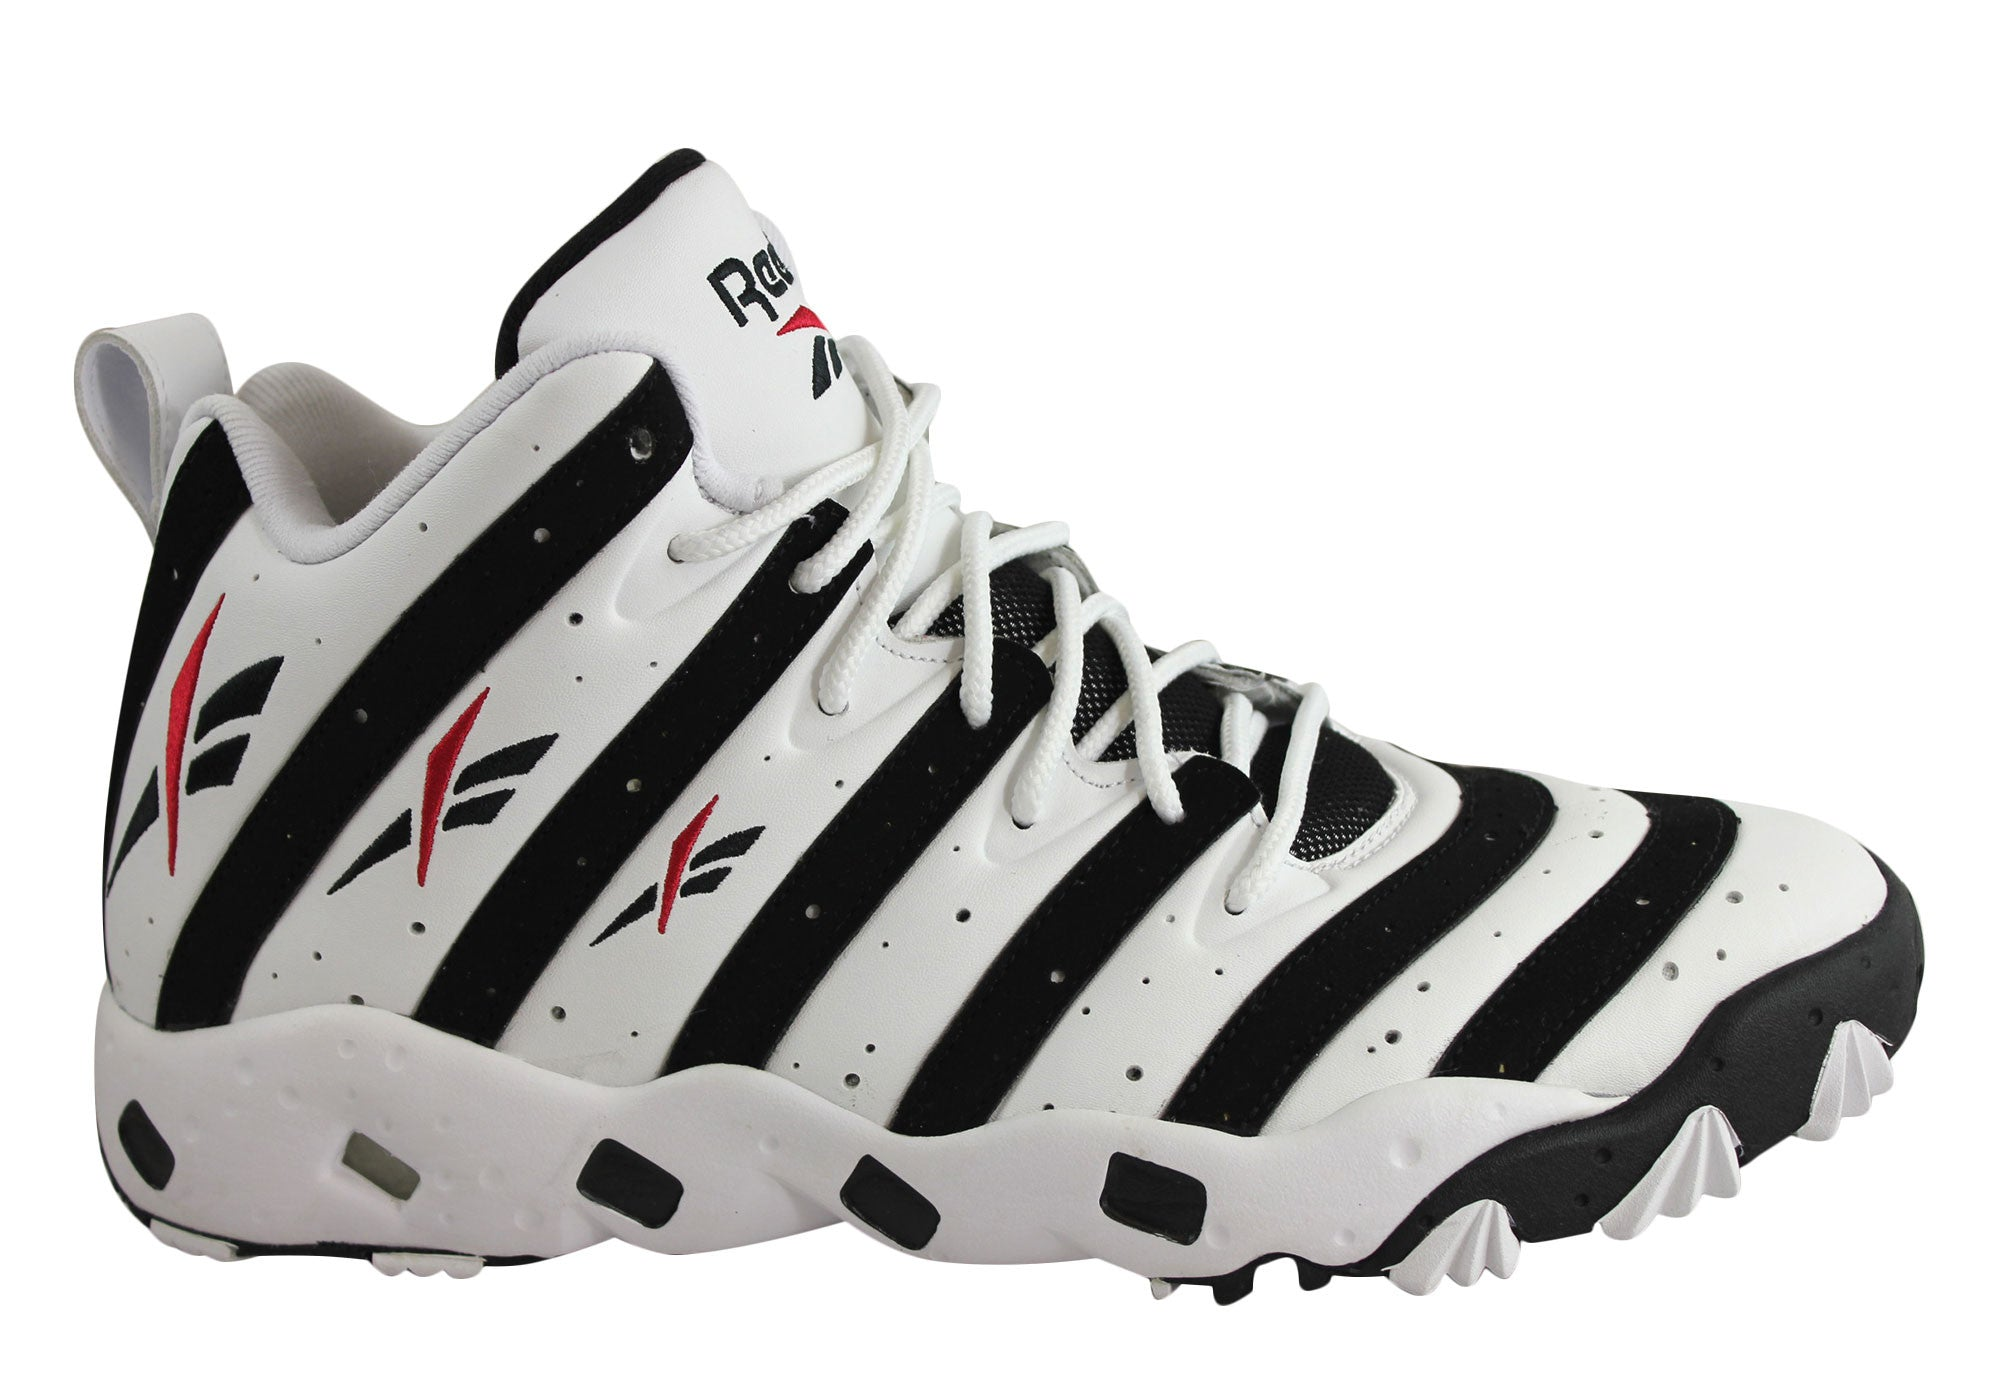 NEW-REEBOK-TECH-90S-TRAIN-MENS-HI-TOP-